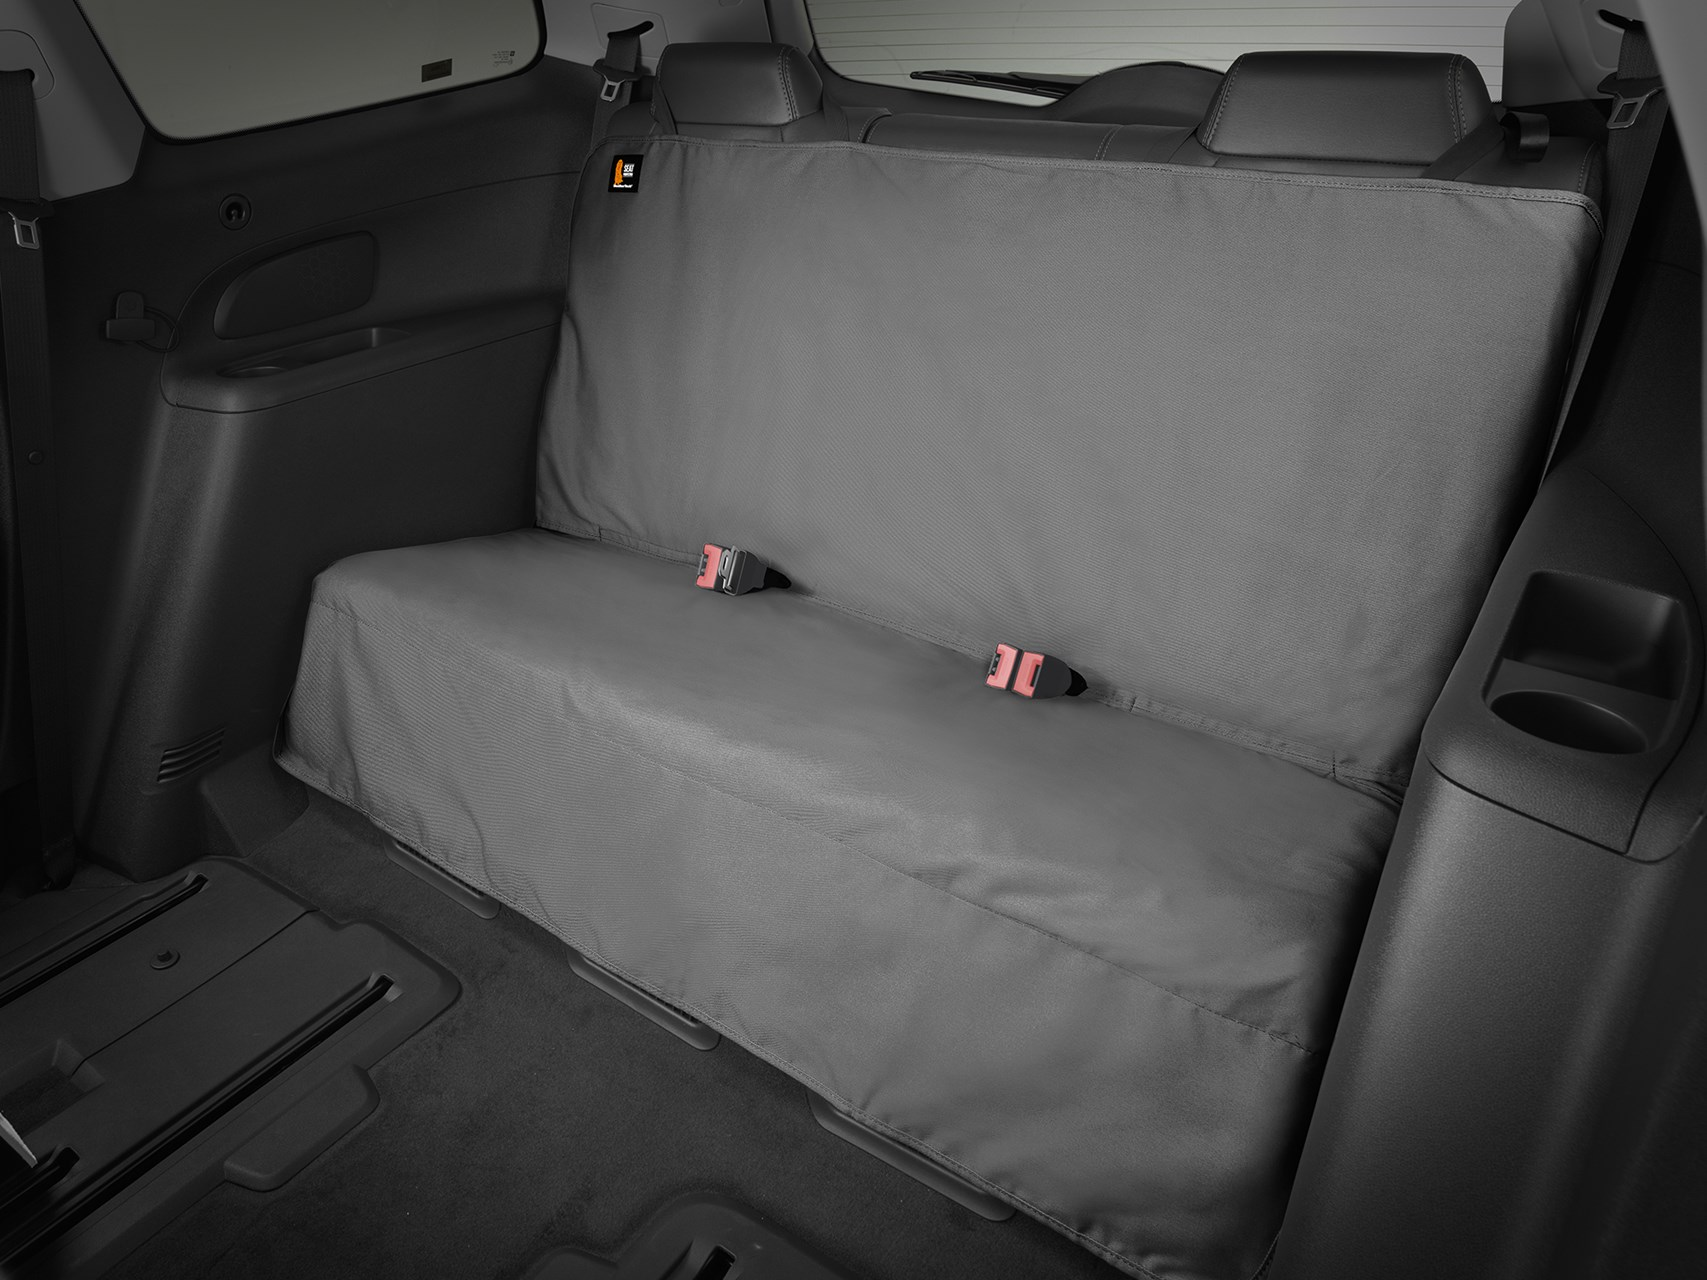 seat_protector_black_3rdRow